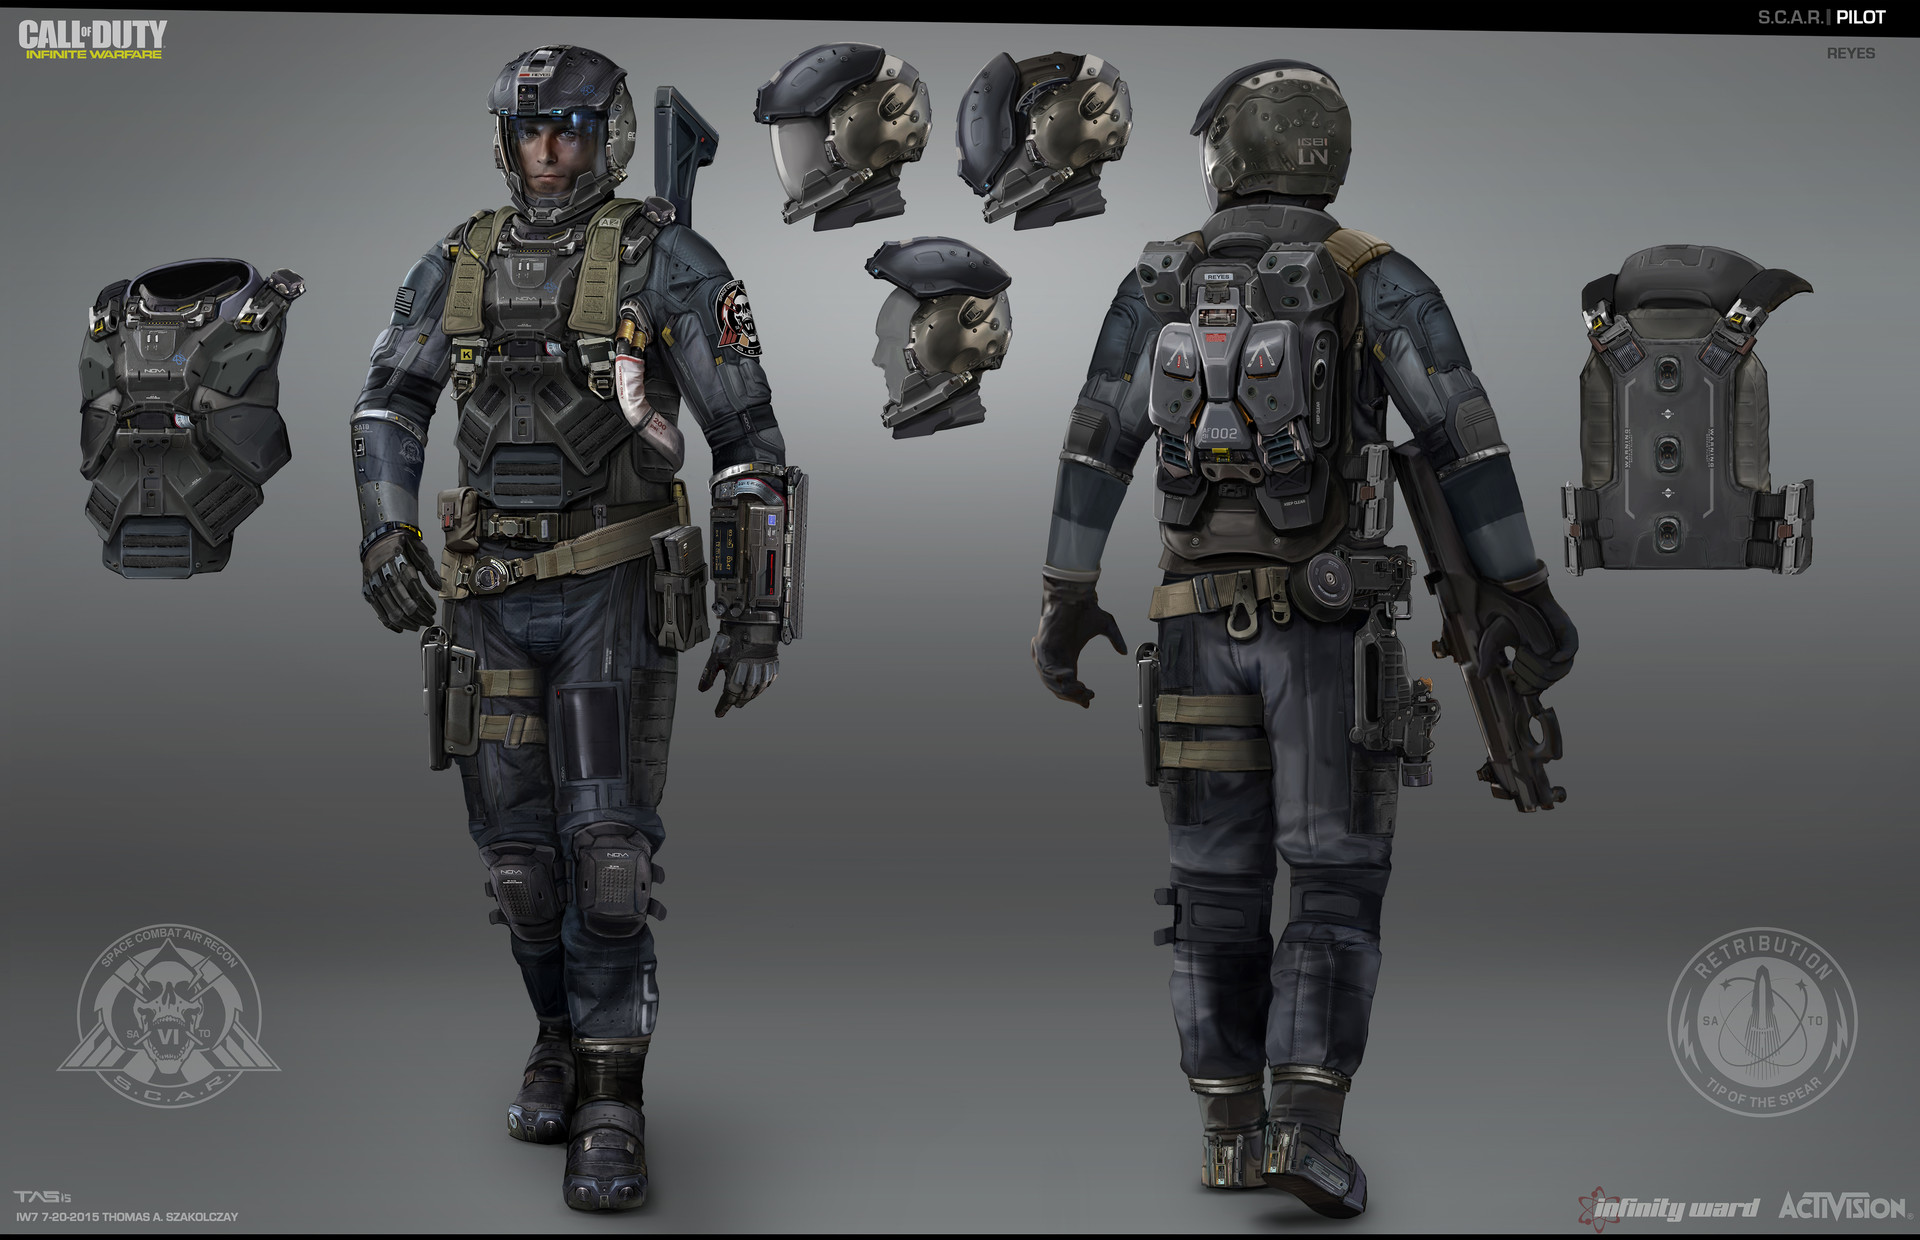 """Final SCAR Pilot Design: This is the model sheet i passed off to the character modelers. The Design was intended to express a combination of pilot and spec-ops soldier that can operate in the vacuum of space to """"boots on the ground"""" combat."""